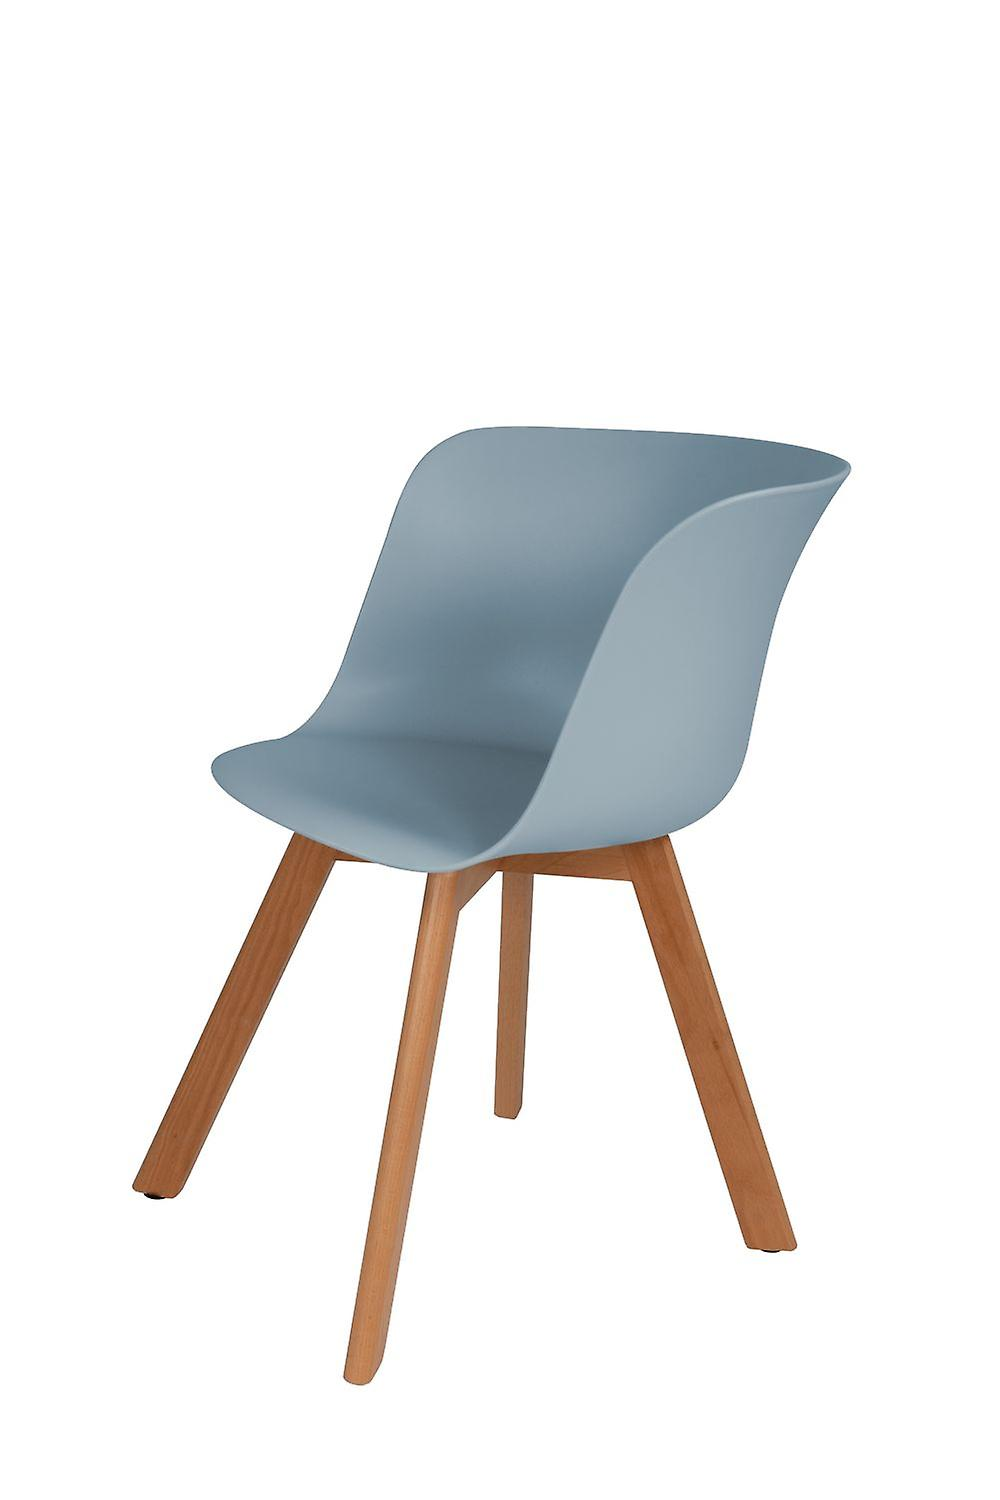 Set Of 4 Kitchen Chairs Shell Chair Chair Chairs Kitchen Chair Dining Chair Scandi Blue Set Of 4